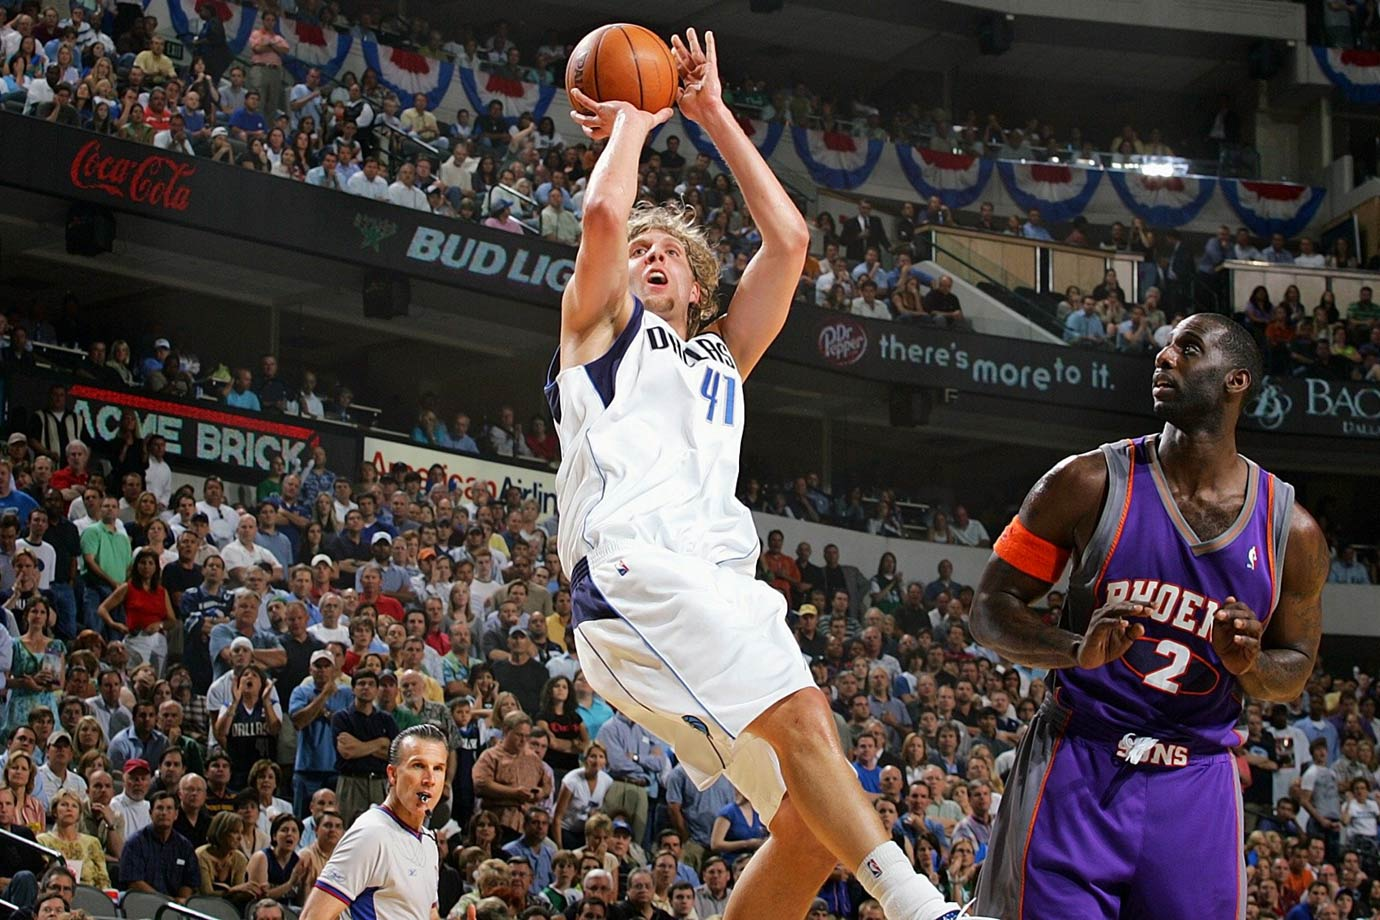 50 vs Phoenix (June 1, 2006 — Pictured), 51 vs Golden State (March 23, 2006), 53 vs Houston (Dec. 2, 2004)